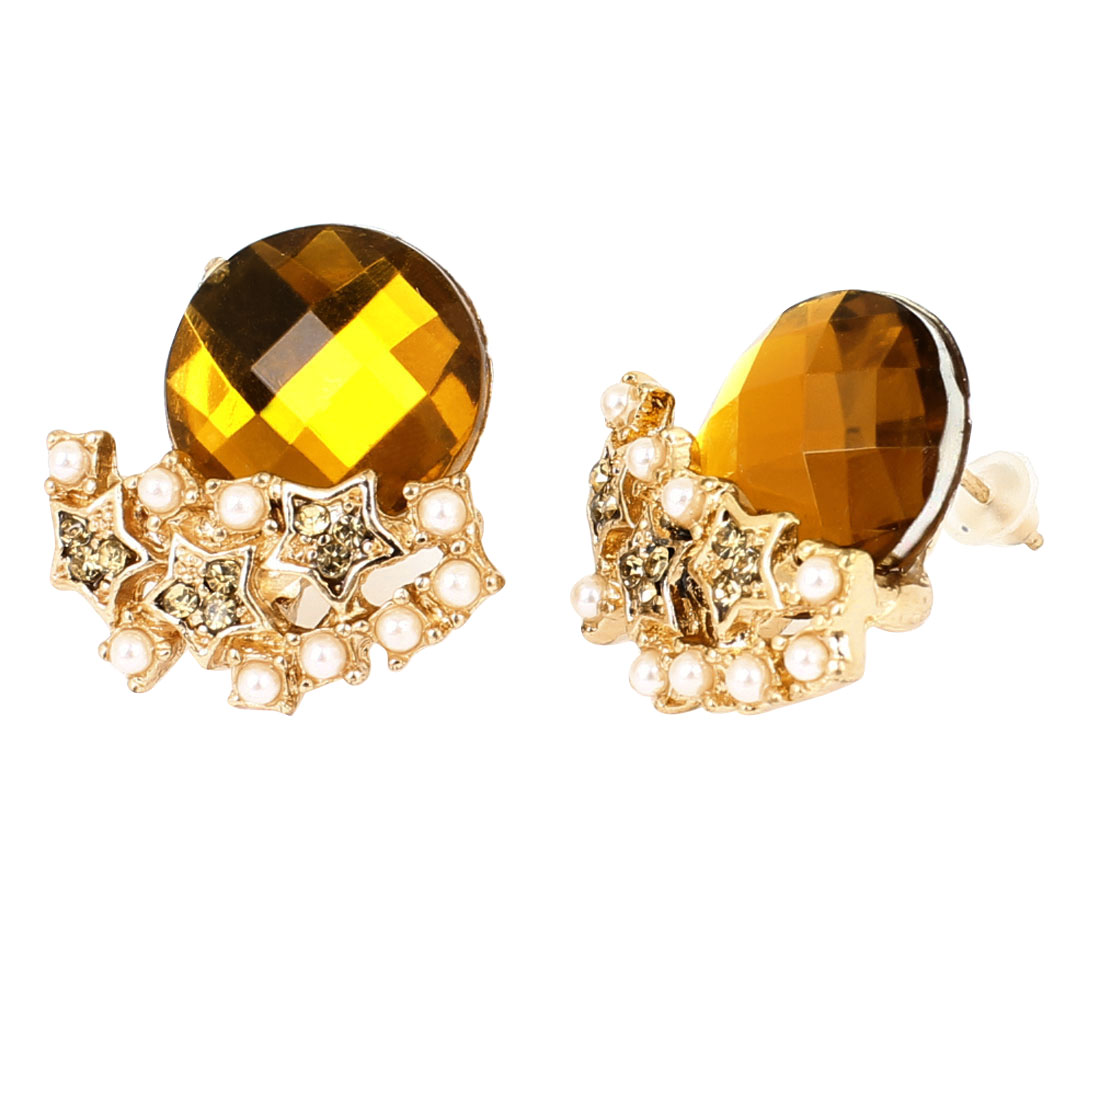 Pair Gold Tone Brown Faceted Crystal Ornament Stud Earrings Decor for Women